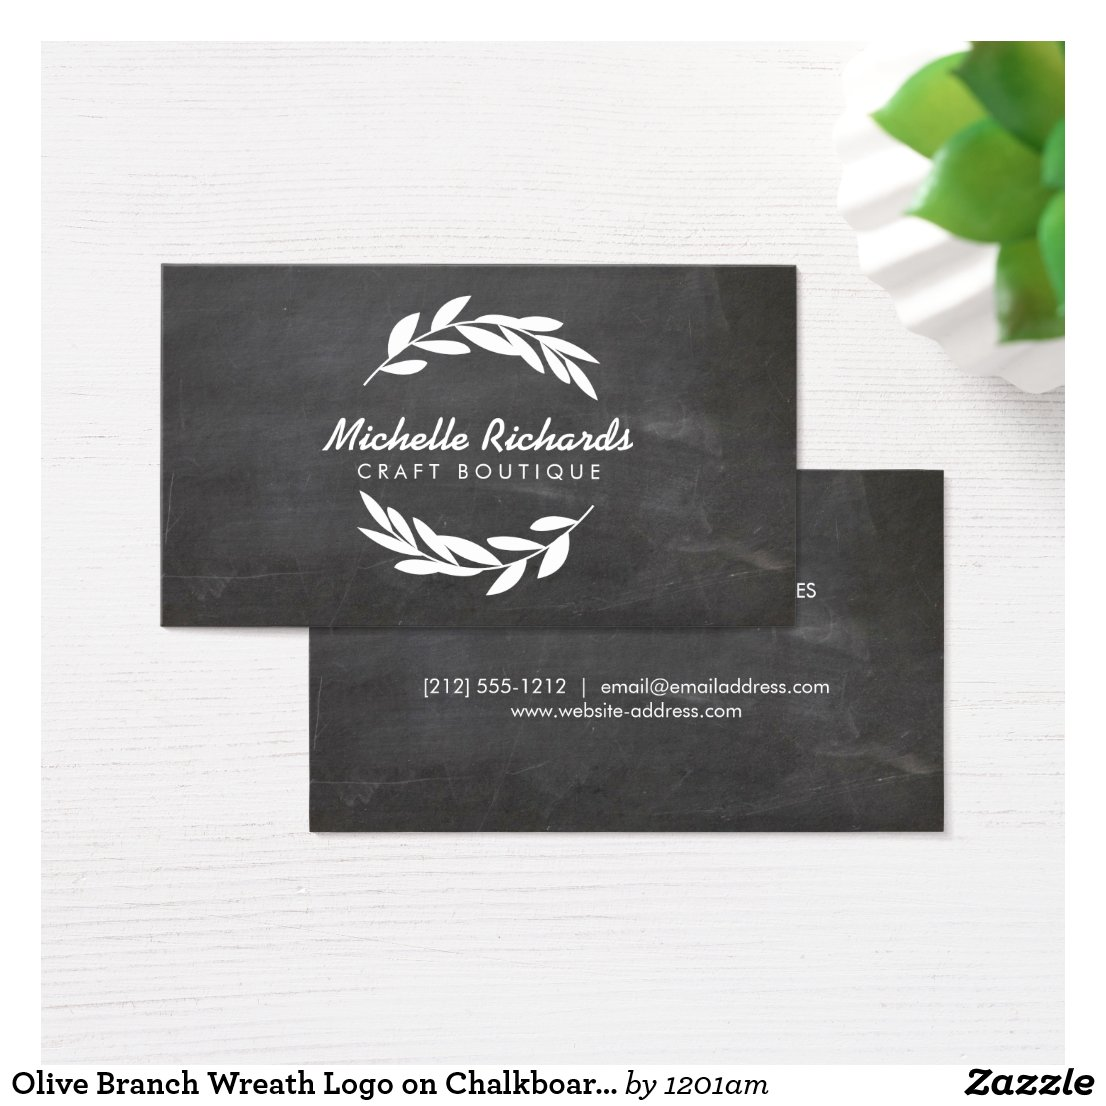 Olive Branch Wreath Logo on Chalkboard Background Business Card